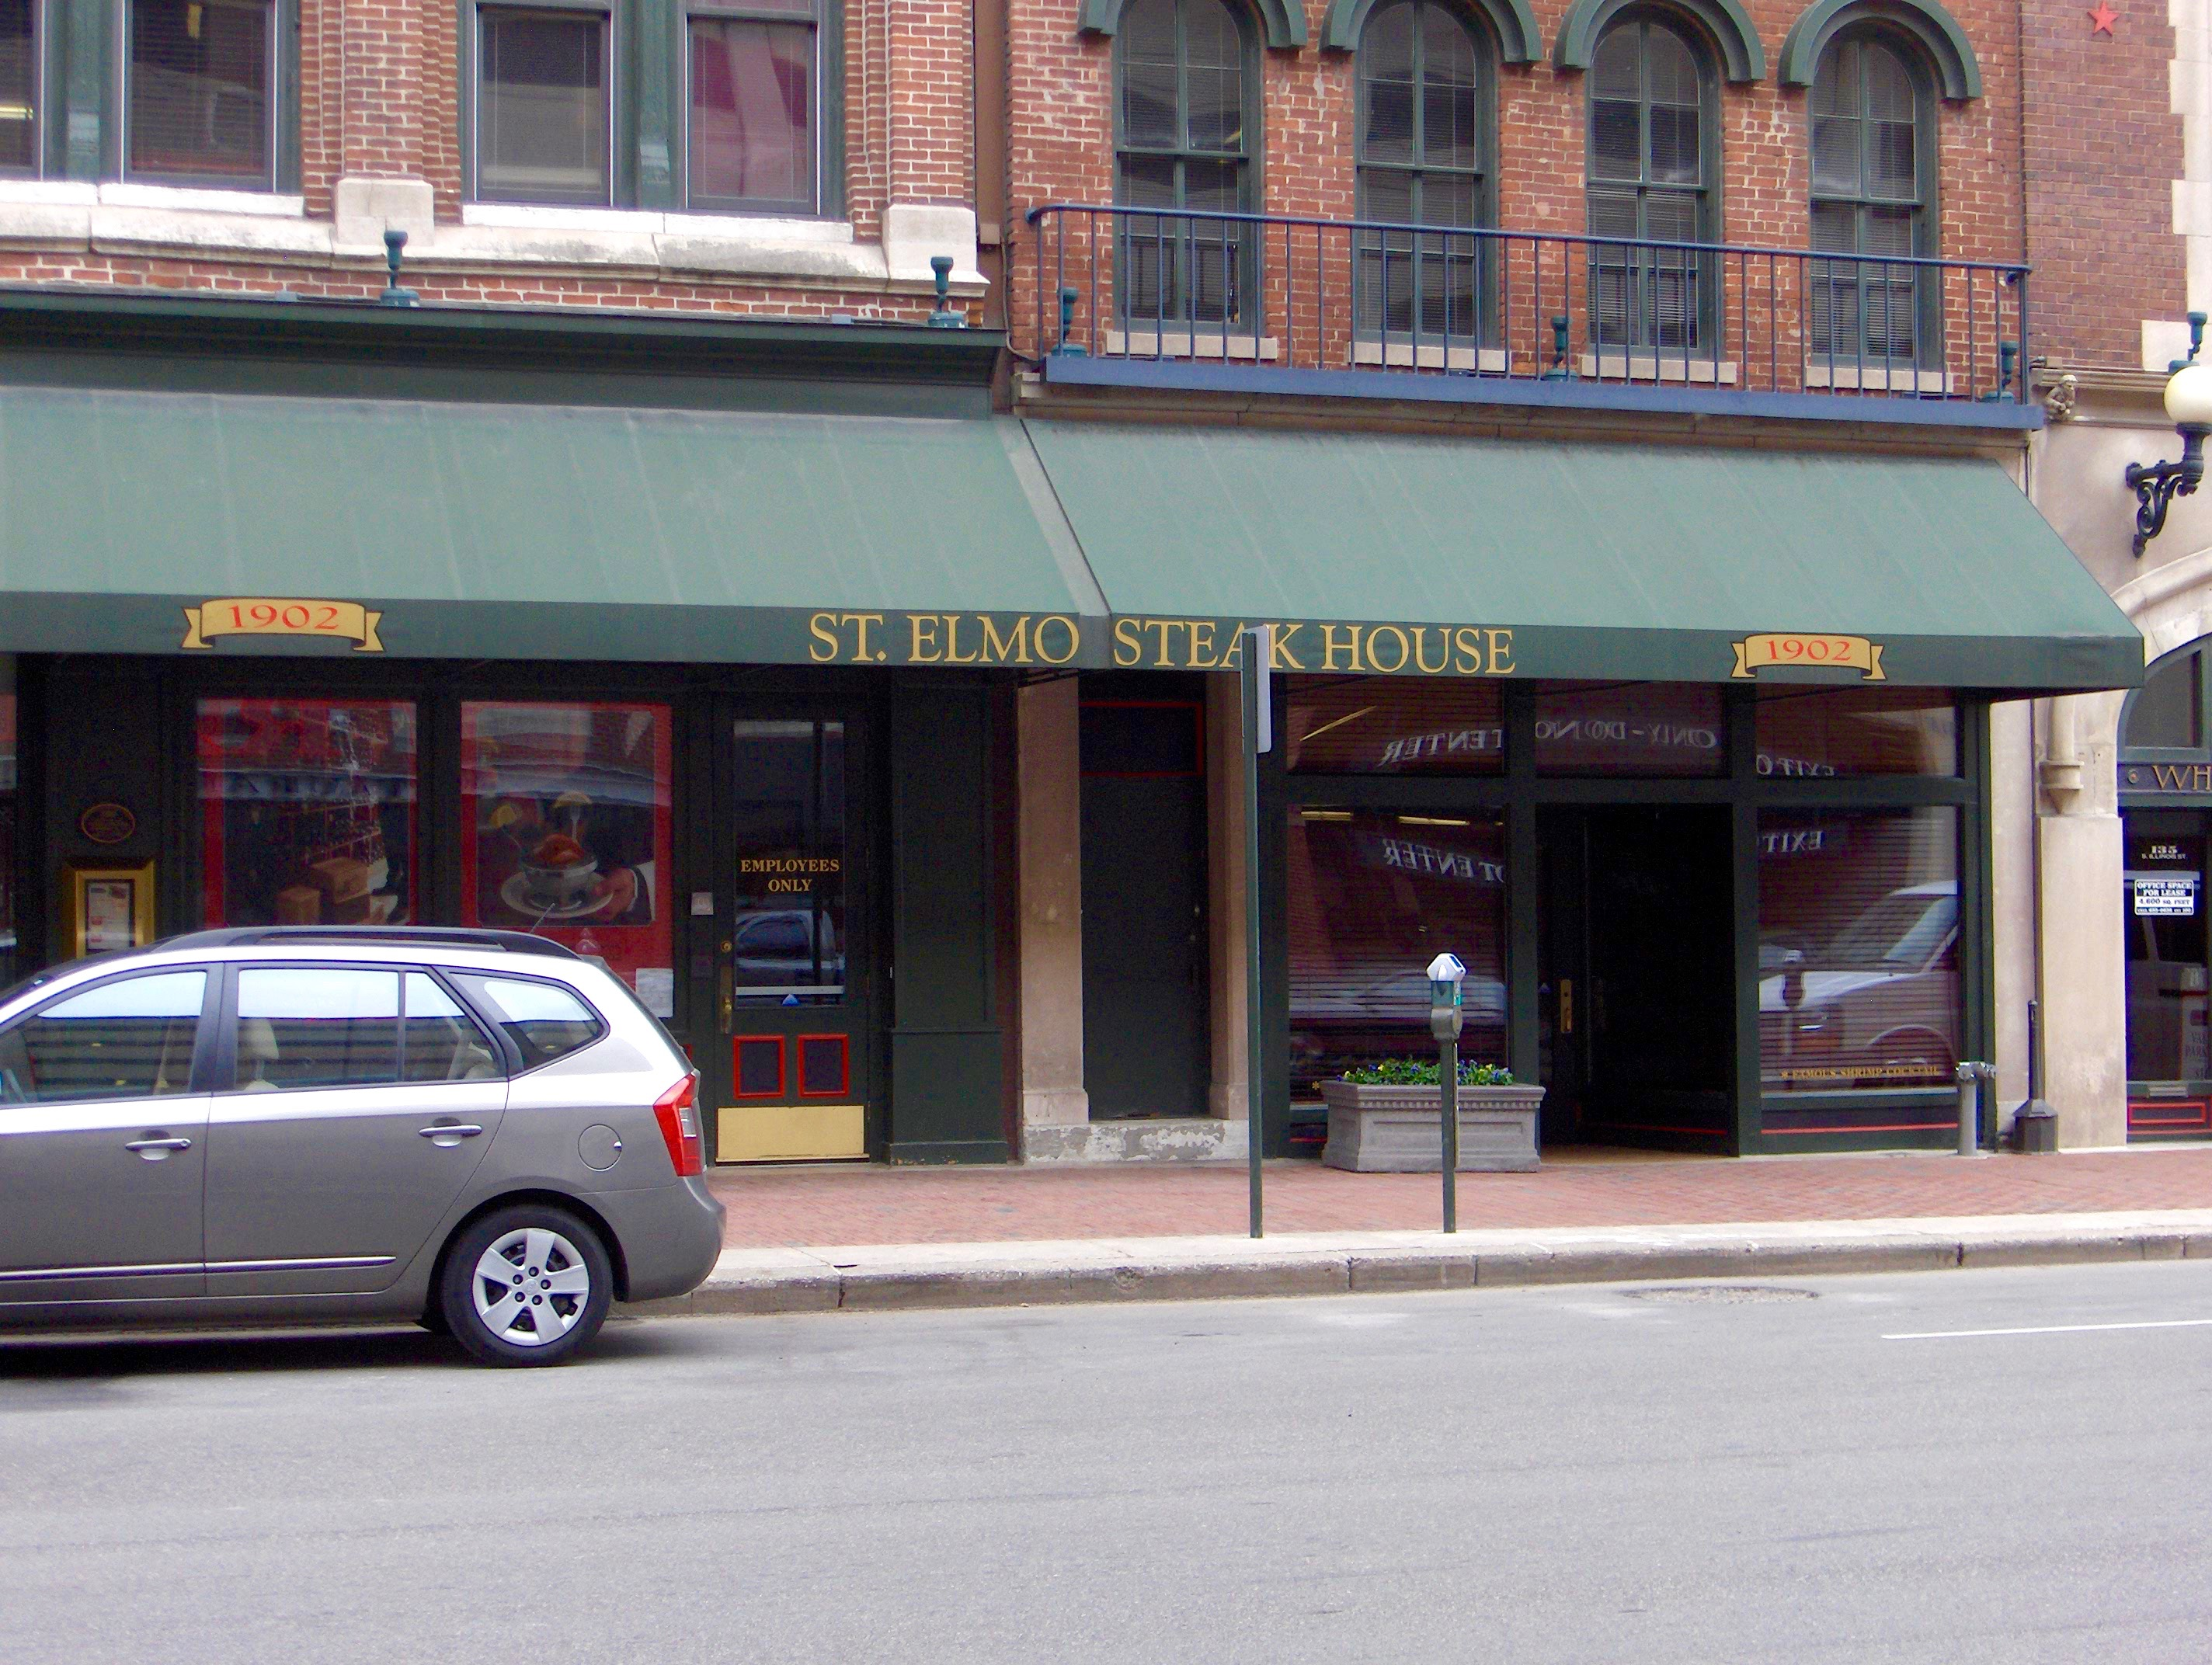 St._Elmo_Steak_House,_Indianapolis,_Indiana.jpg